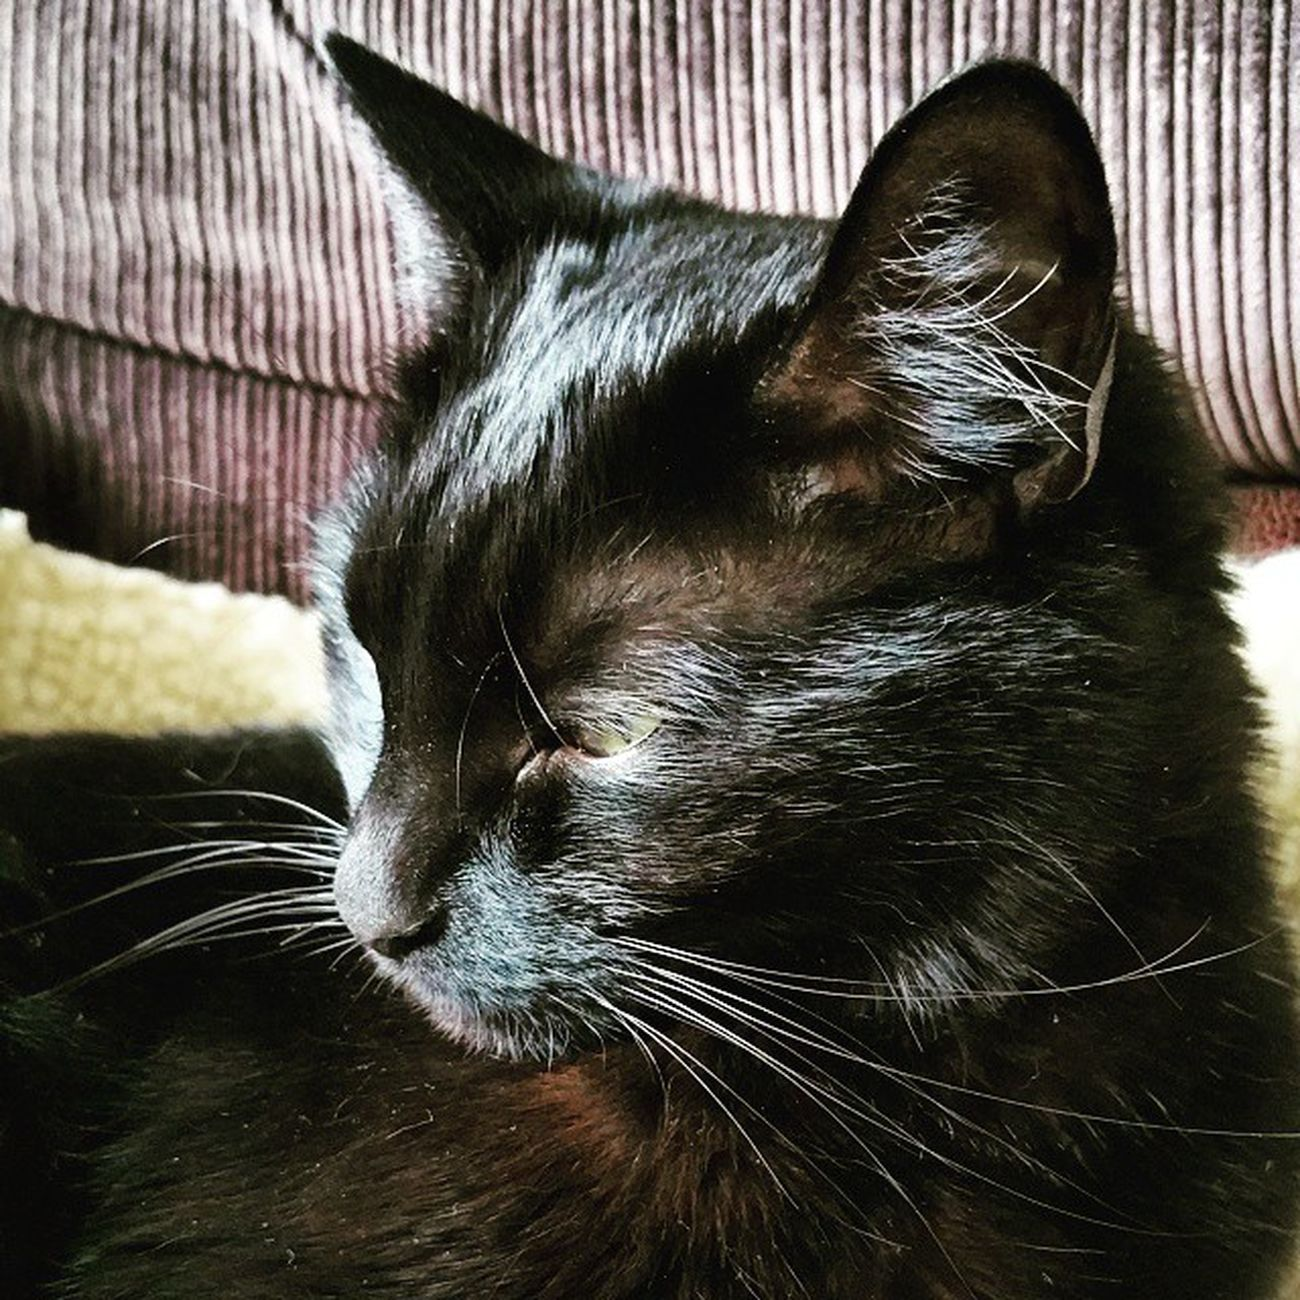 My perfect little Lucky on Caturday 🐱 Juno Cats Love Lovemycats MyBABiES Katemarie_uk Photooftheday Petsofig Petsofinstagram Catsofinstagram Catsofig Android BLackCat Beautiful Blackcatsofinstagram Blackcatsofig Today 200615 Crazycatlady Crazycatgirl